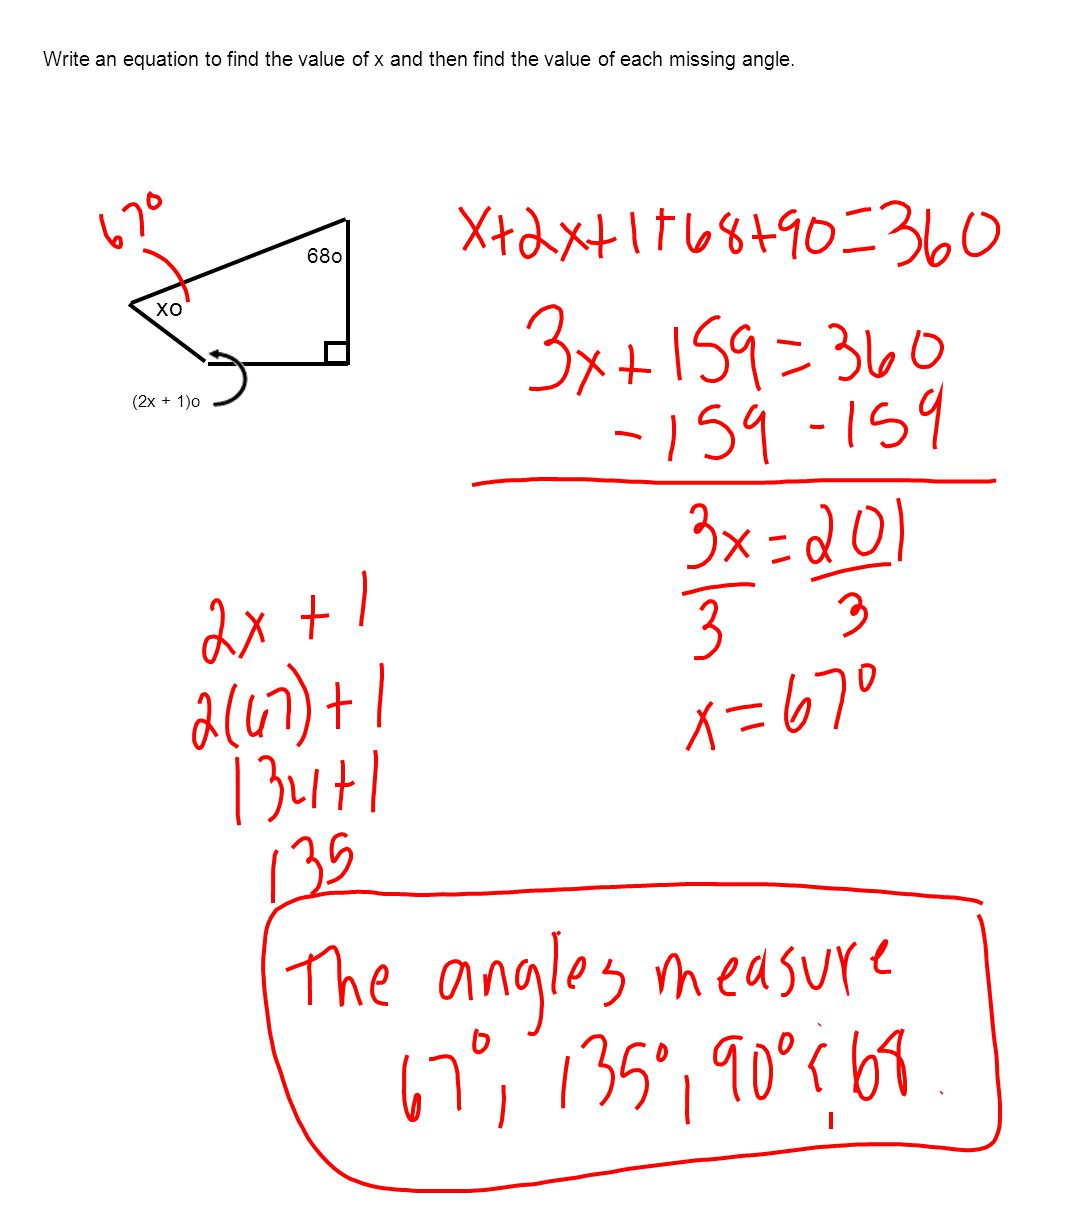 Write an equation to find the value of x and then find the value of each missing angle.